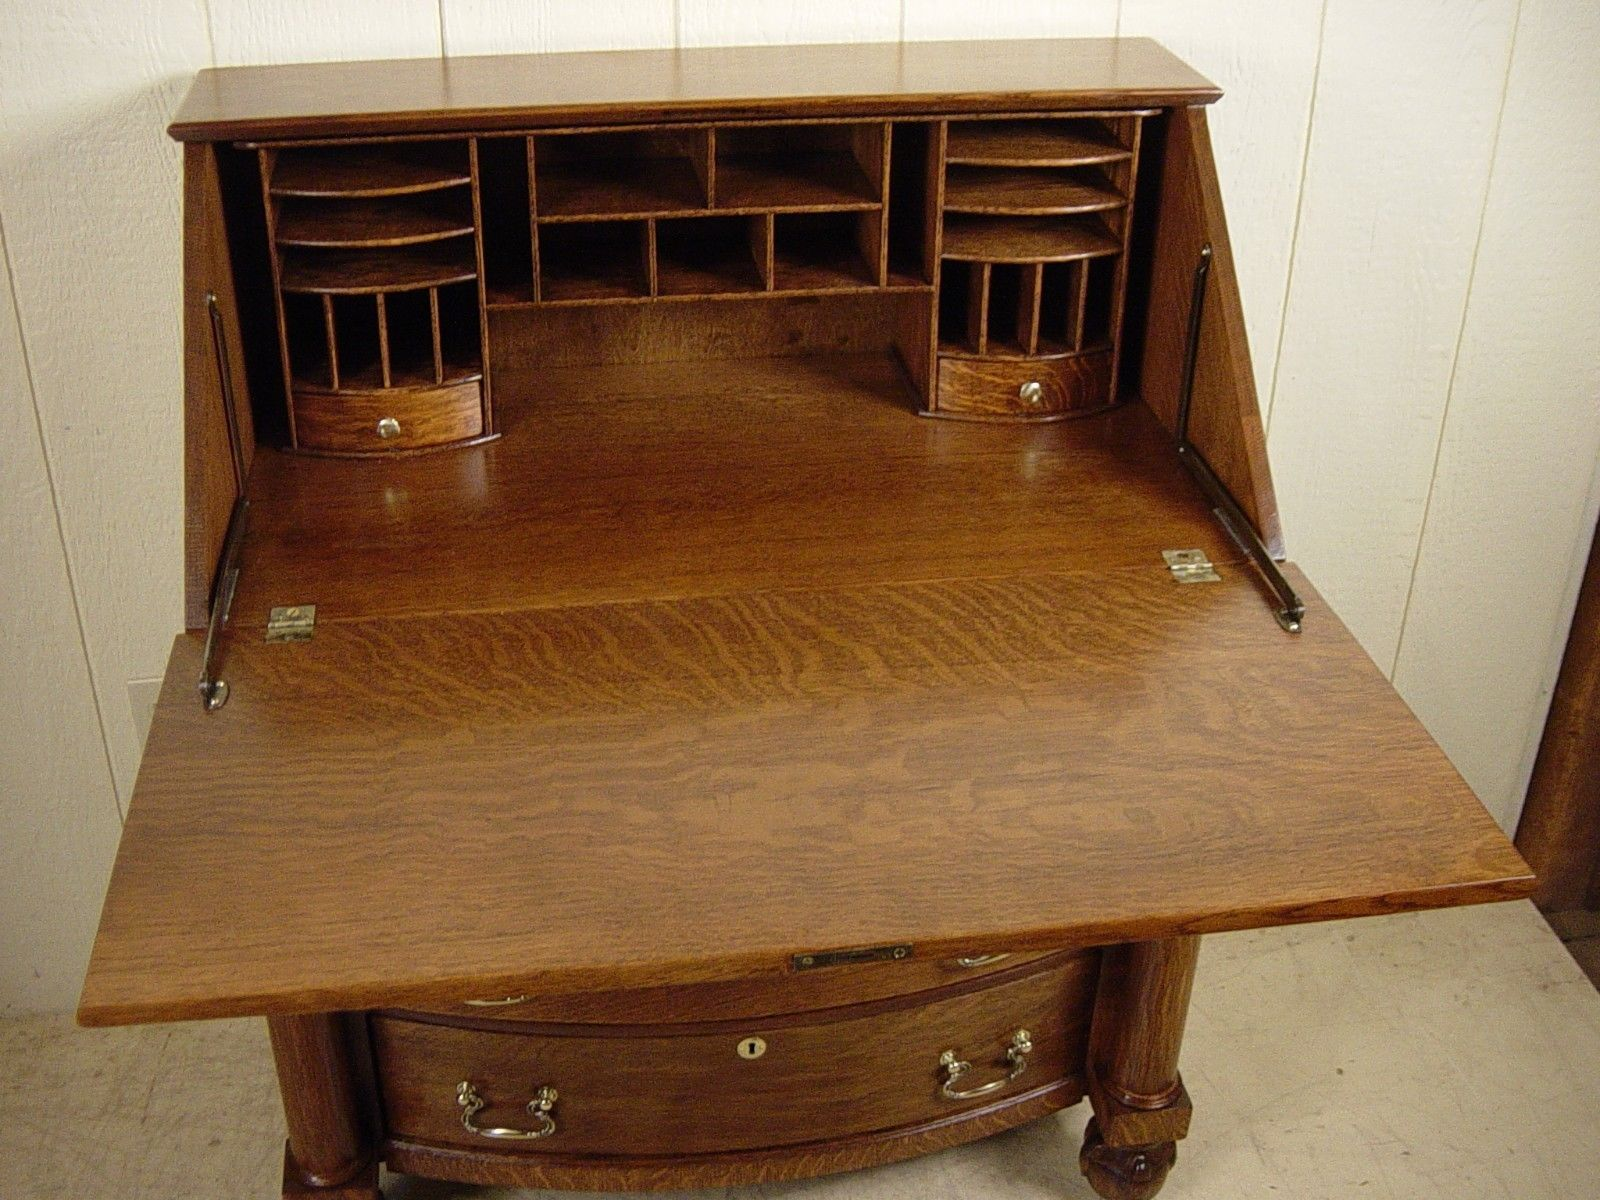 High Quality Front Office Table. Antique Oak Drop Front Desk Office Table E